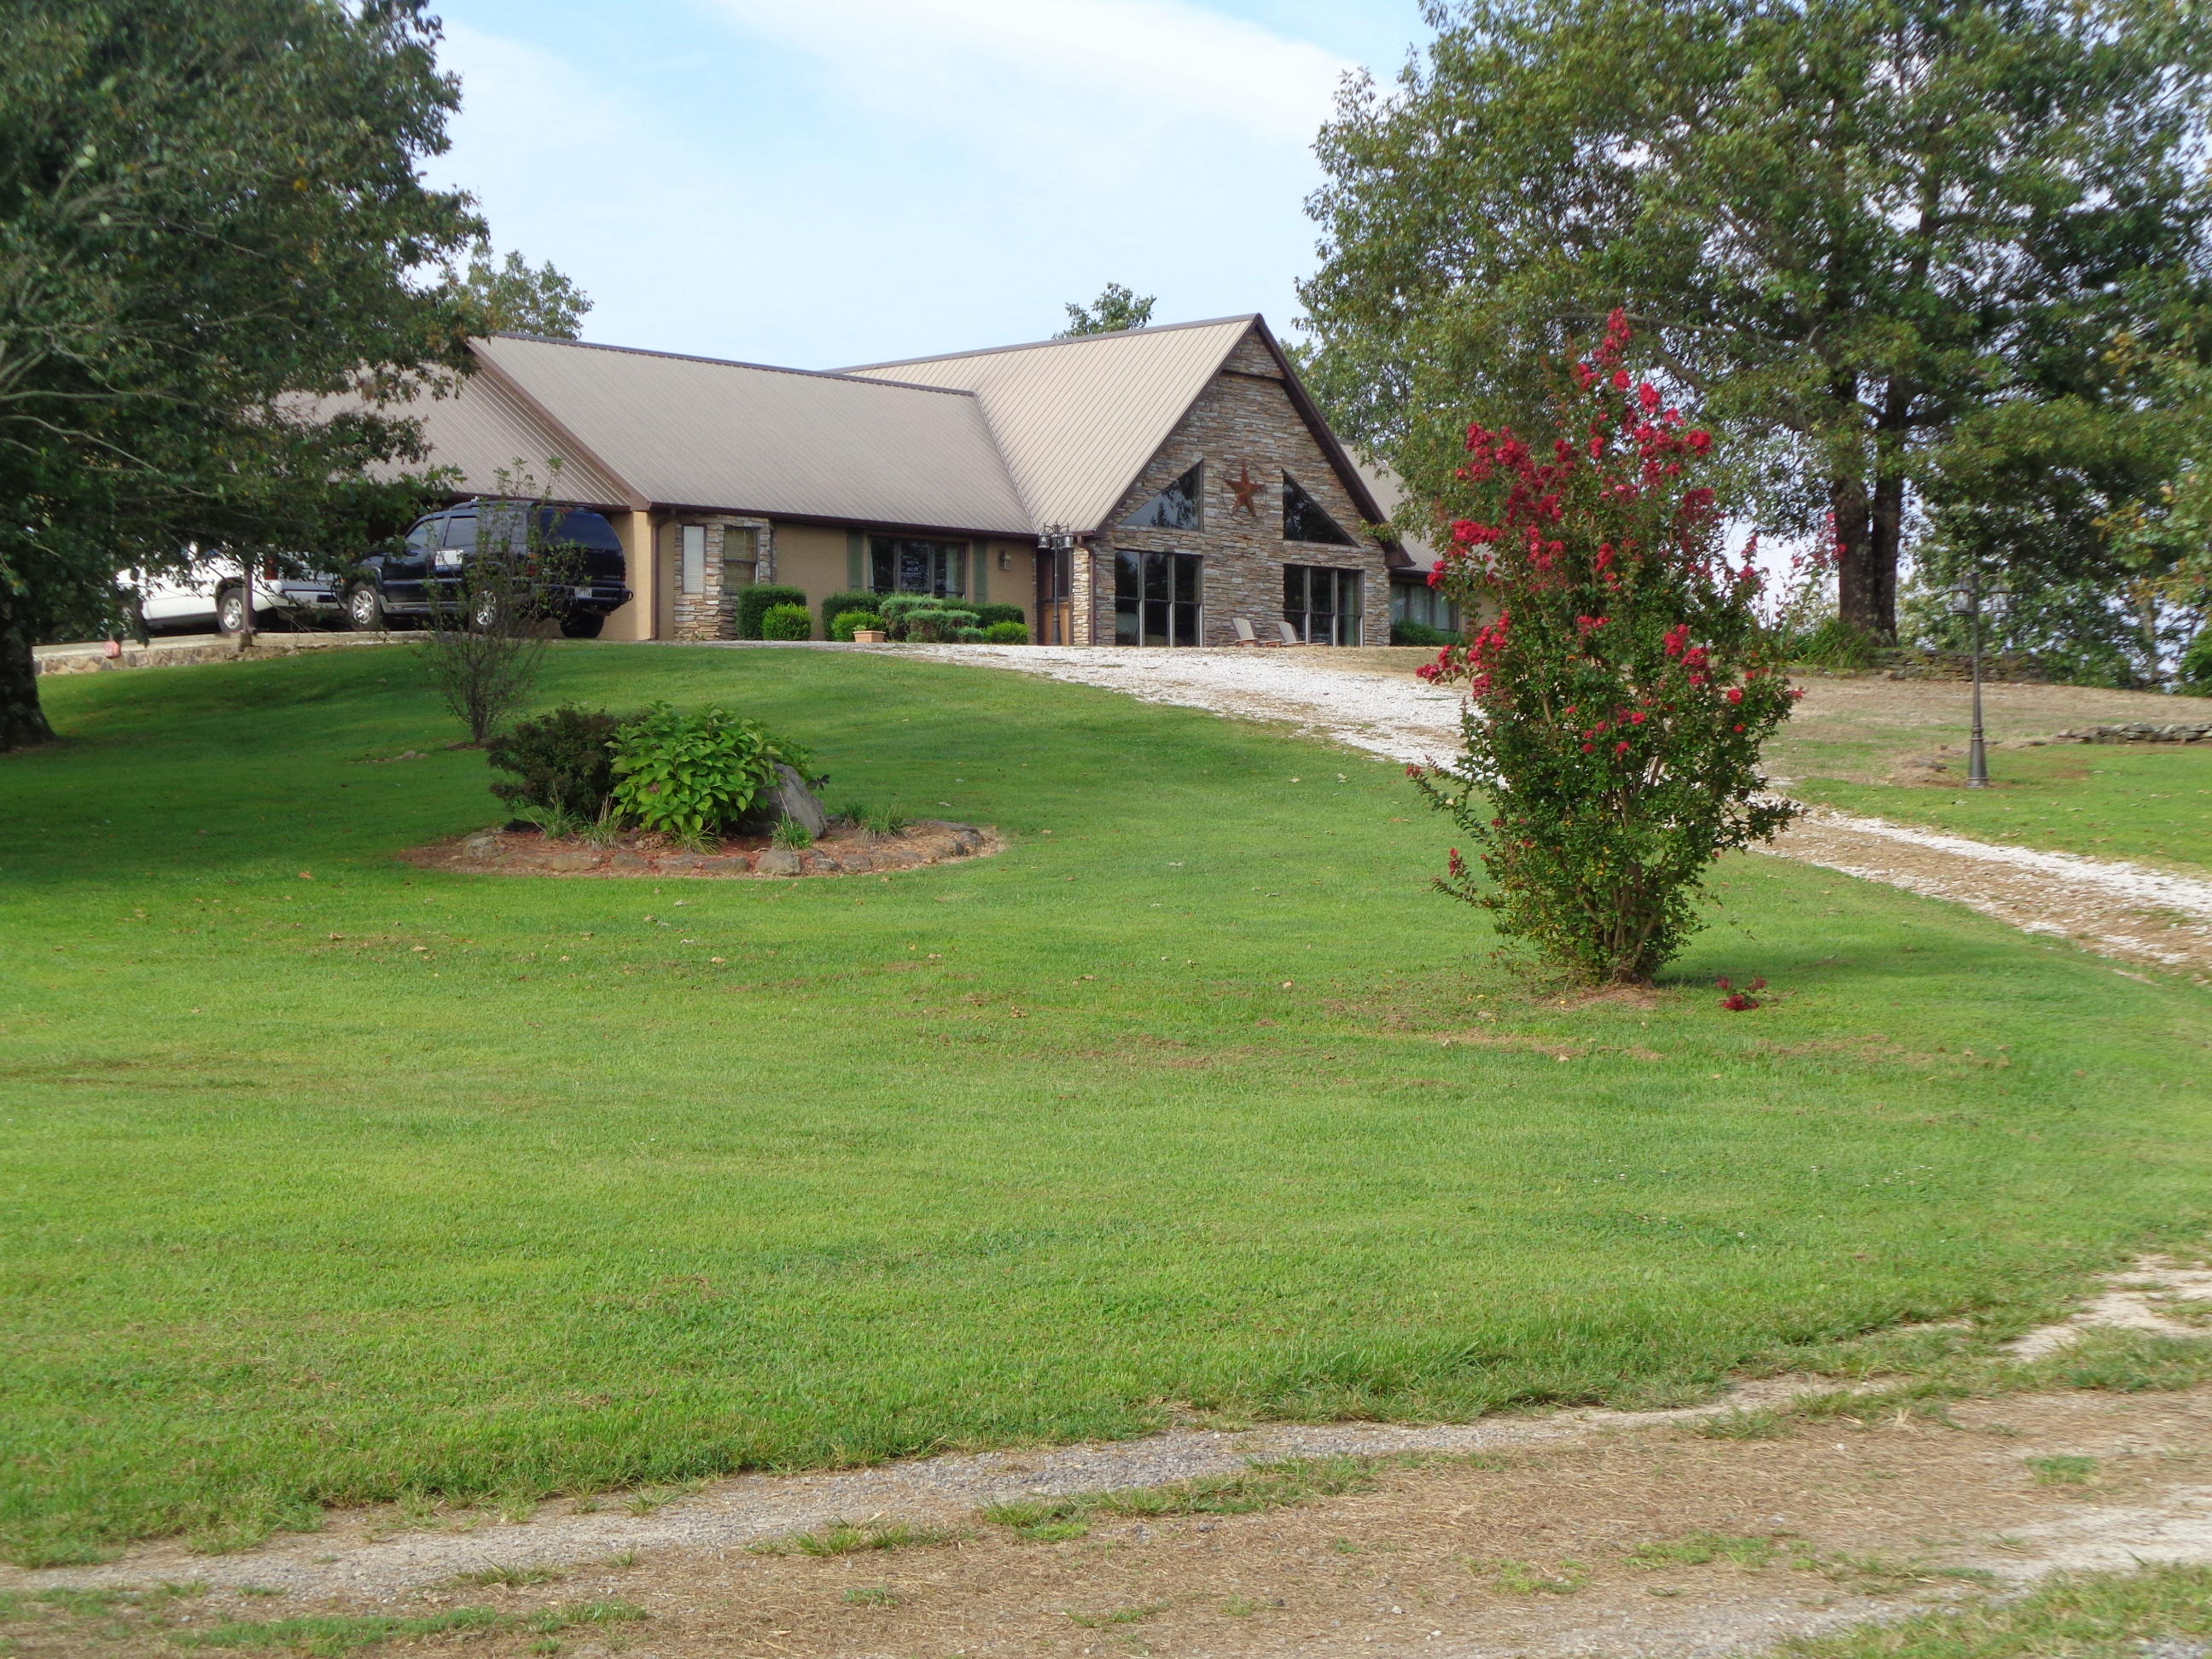 Large photo 31 of home for sale at 7042 SR 254 (Junct. 27 & 254 Tilly) , Other, AR